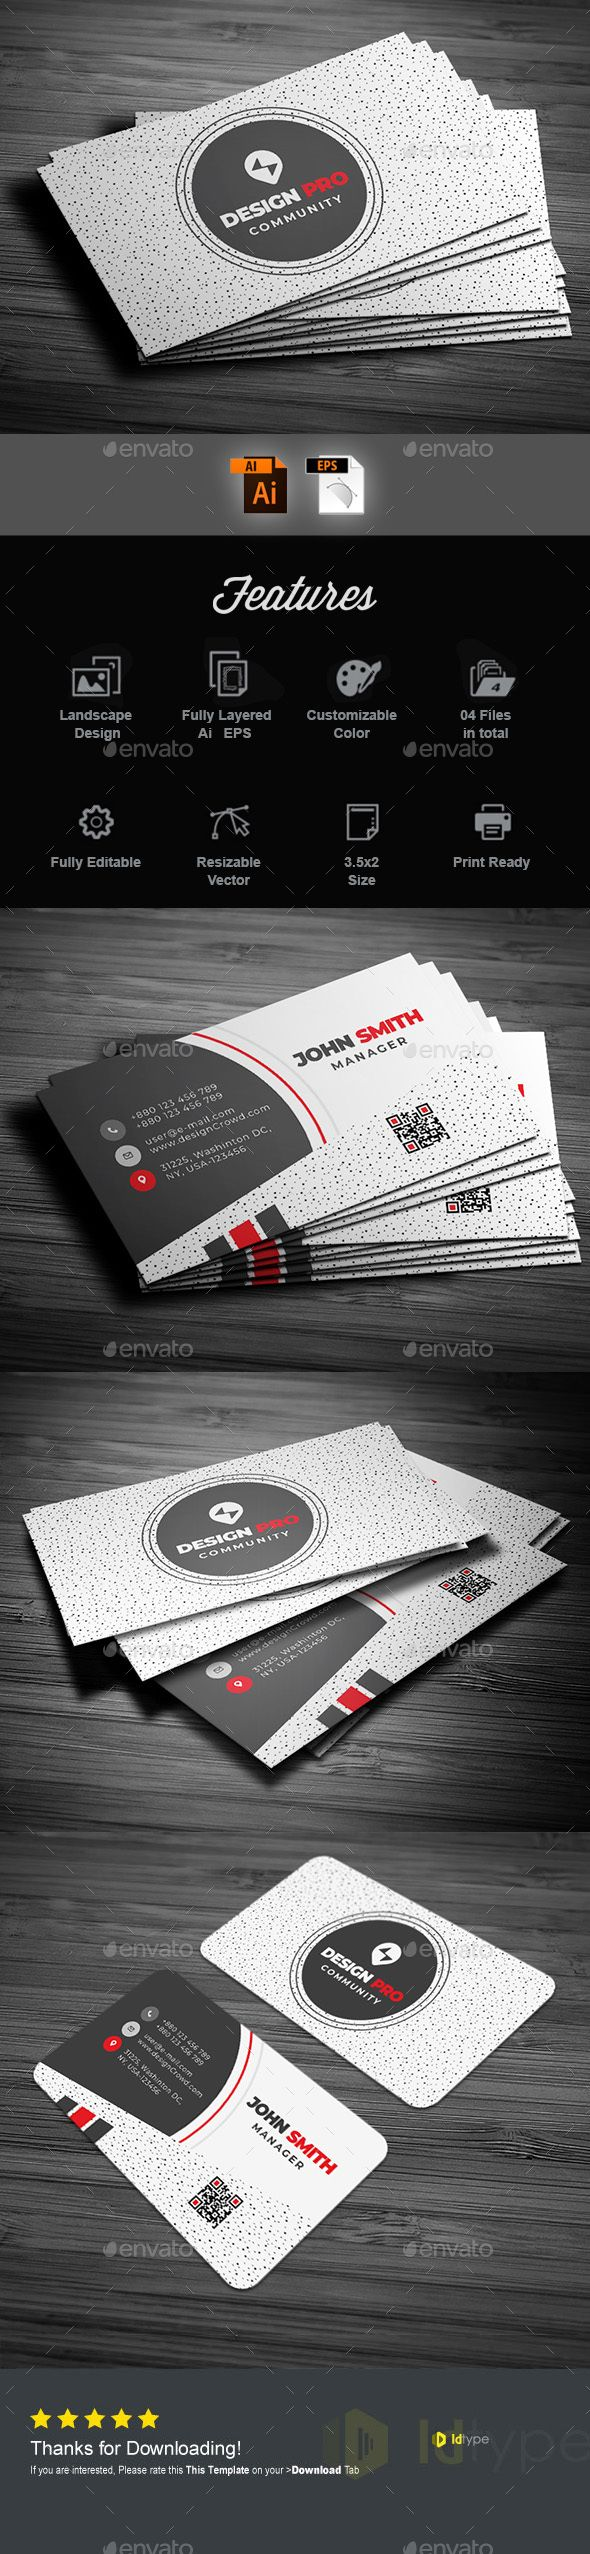 Business Card Template Vector Eps Ai Illustrator Business Cards Creative Vintage Business Cards Business Cards